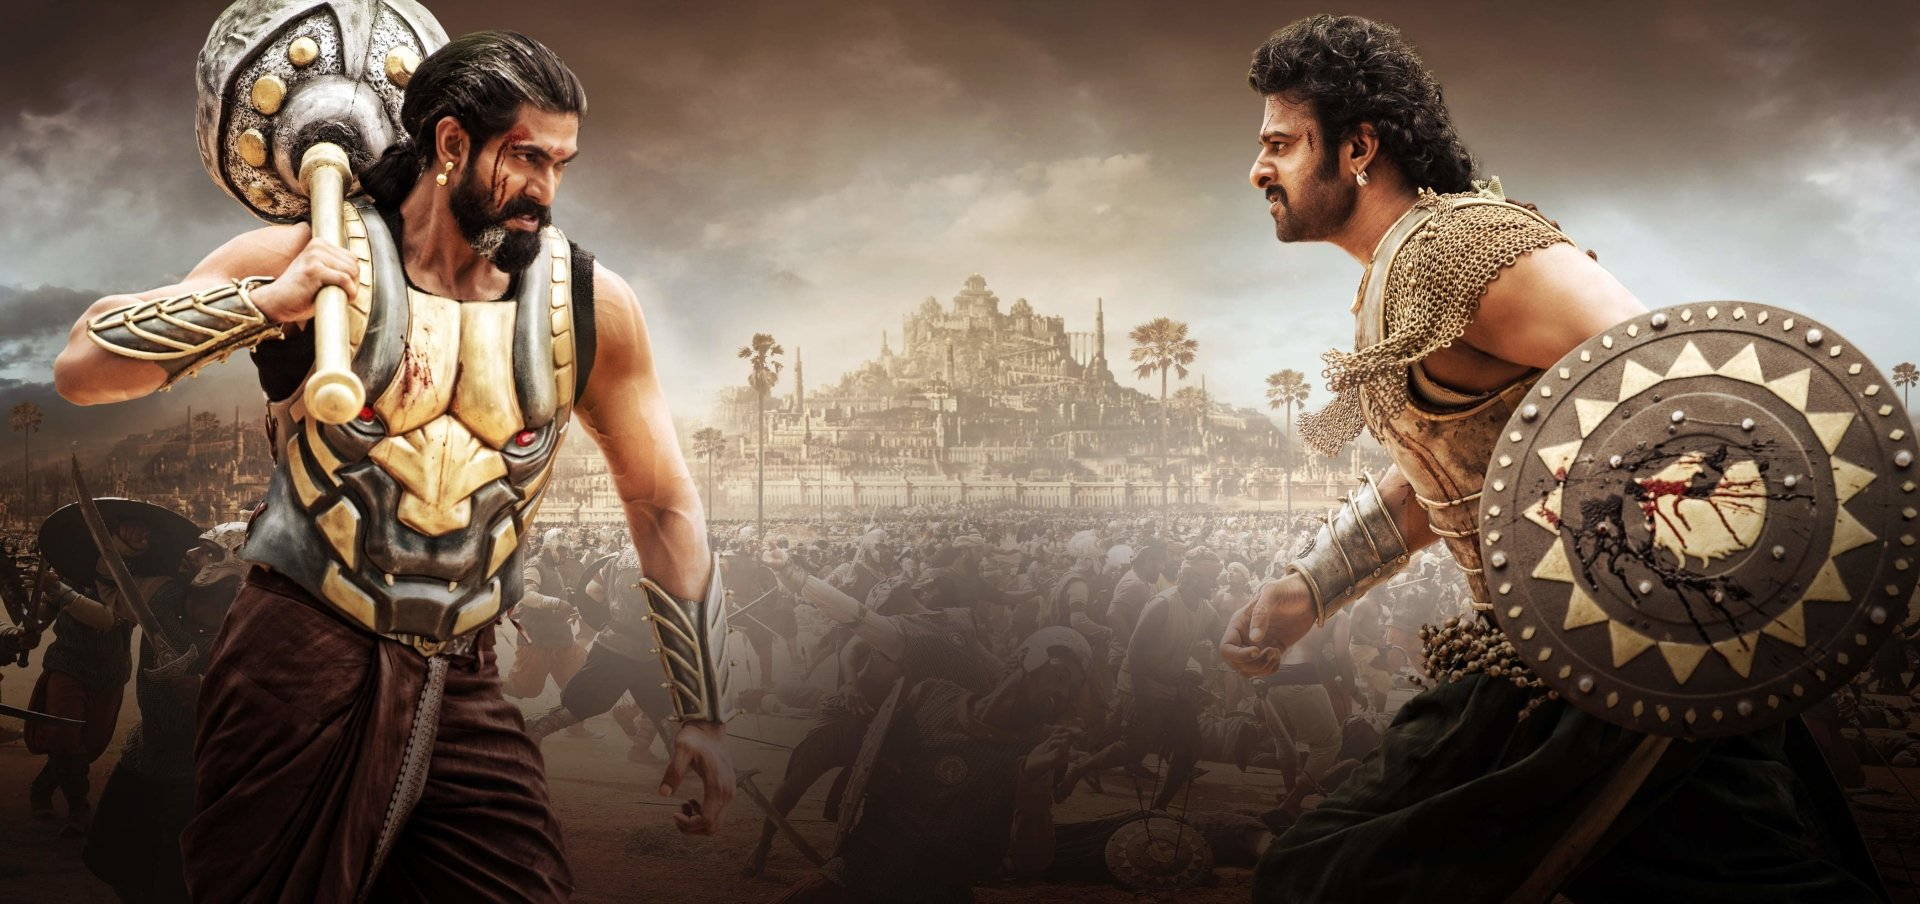 Movie - Baahubali 2: The Conclusion  Wallpaper